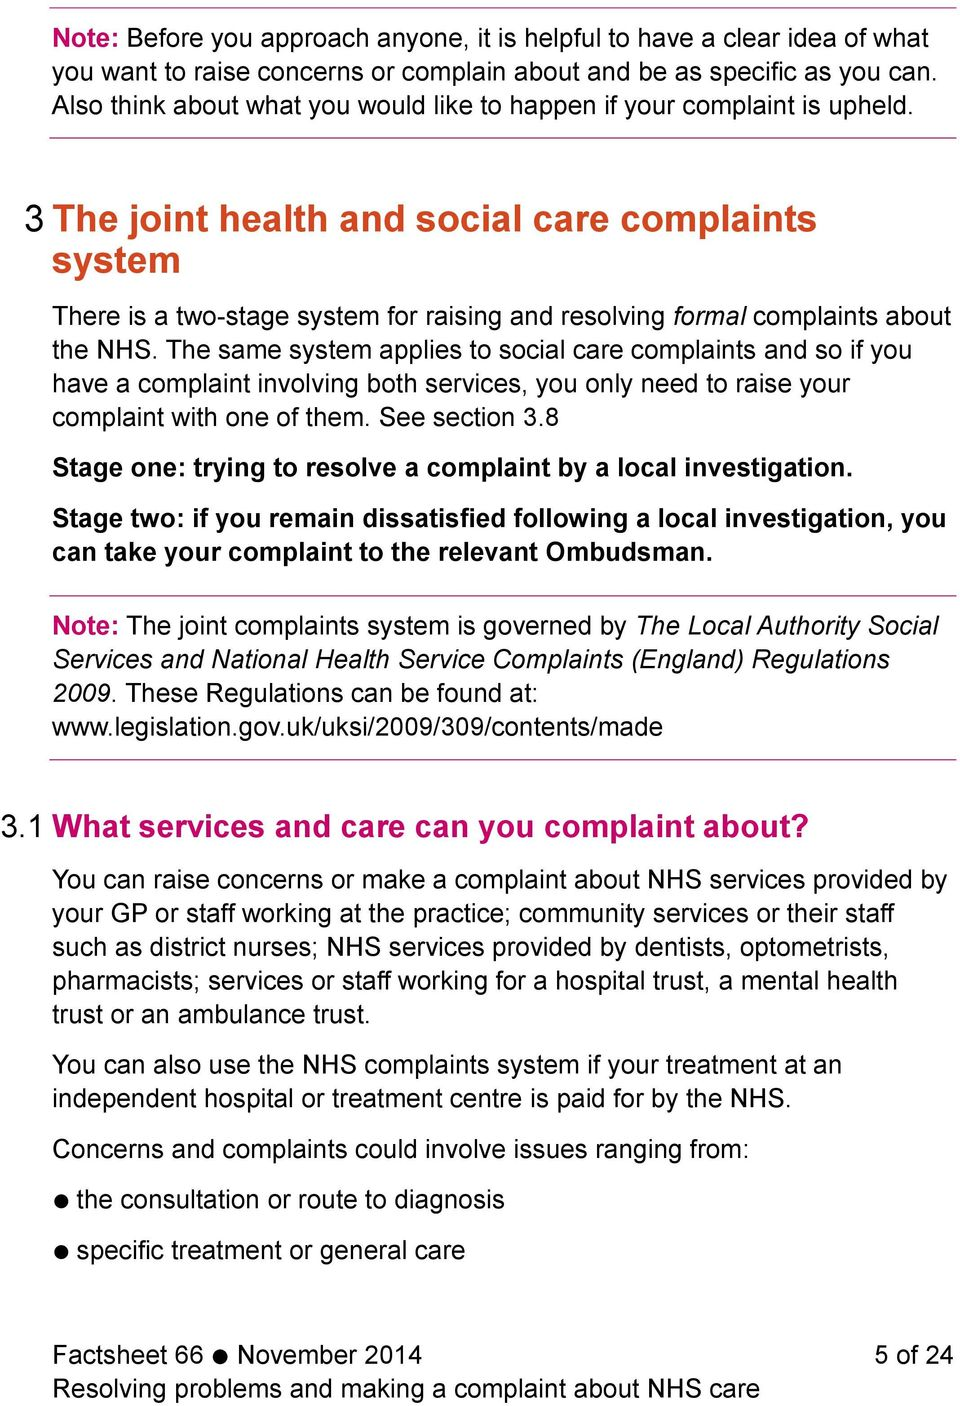 3 The joint health and social care complaints system There is a two-stage system for raising and resolving formal complaints about the NHS.